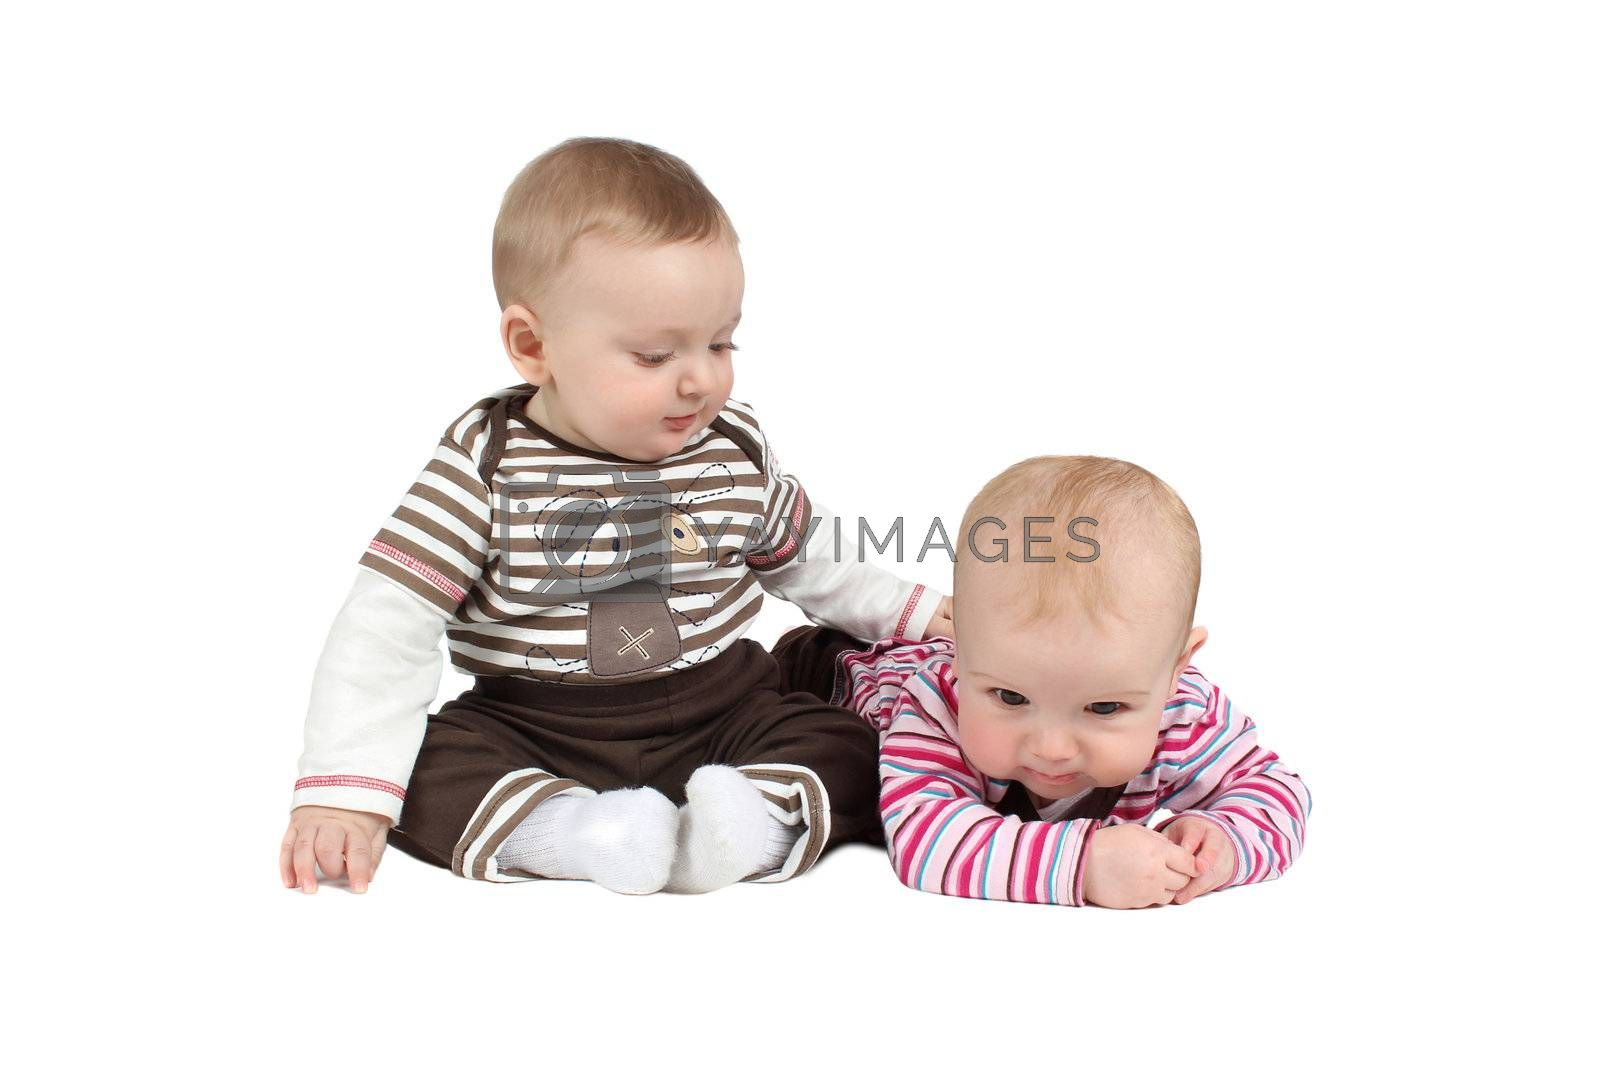 Baby boy and girl wearing striped clothing